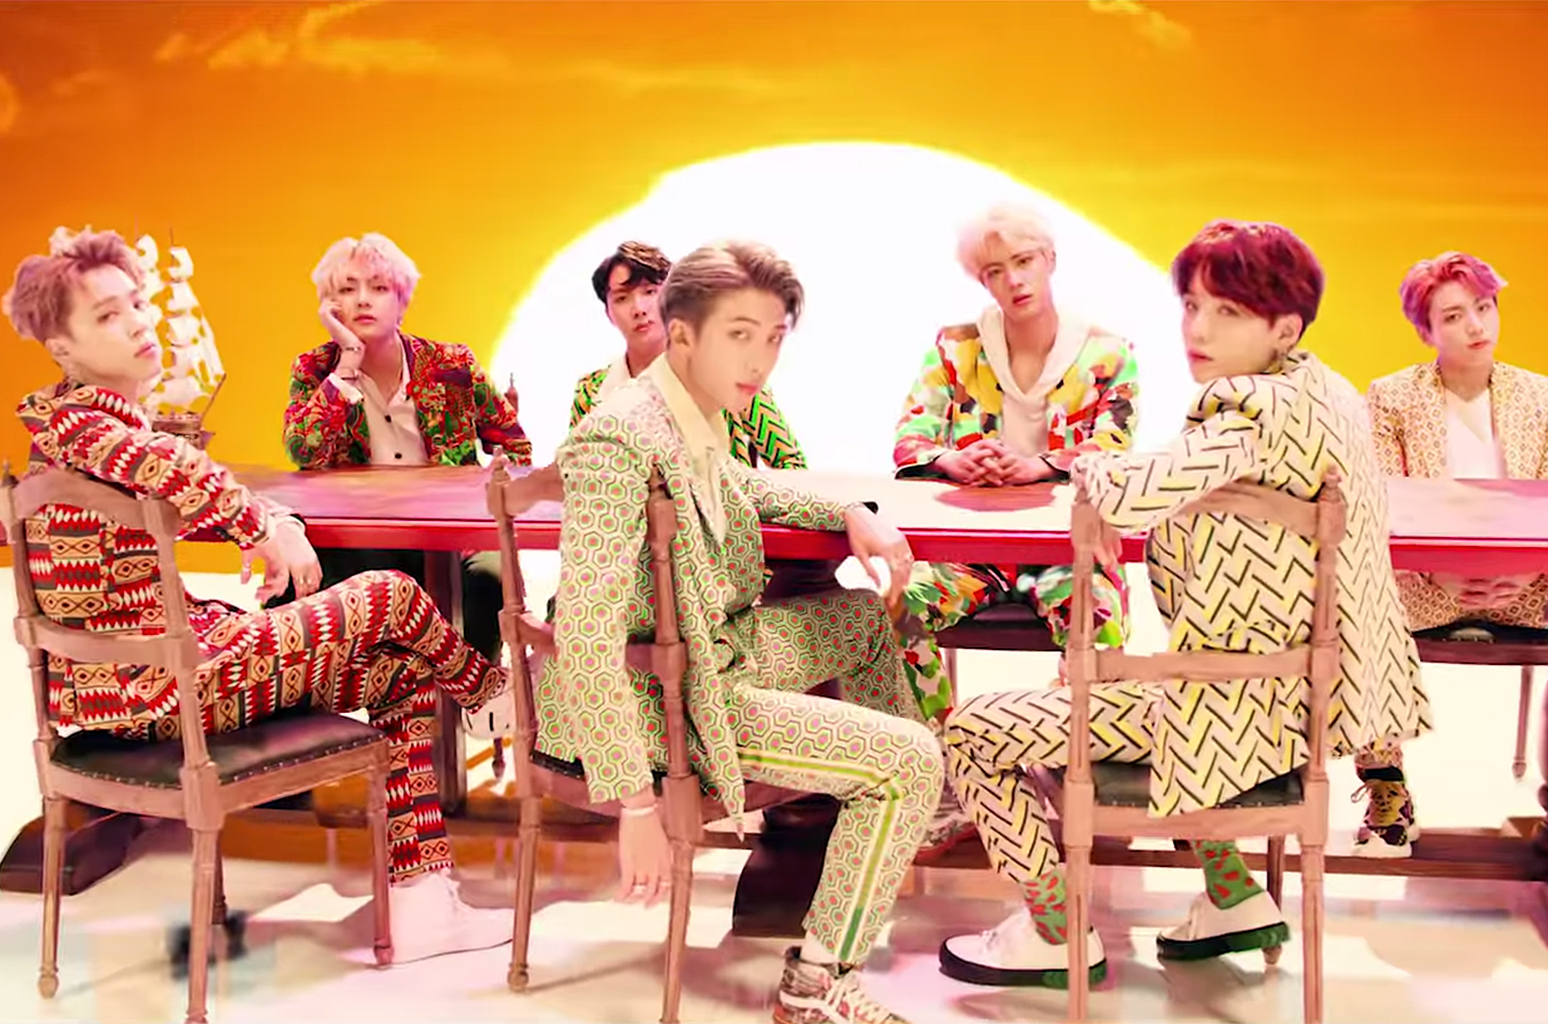 BTS' 'Idol' Music Video is Fastest to Reach 100M Views In 2018 | Billboard